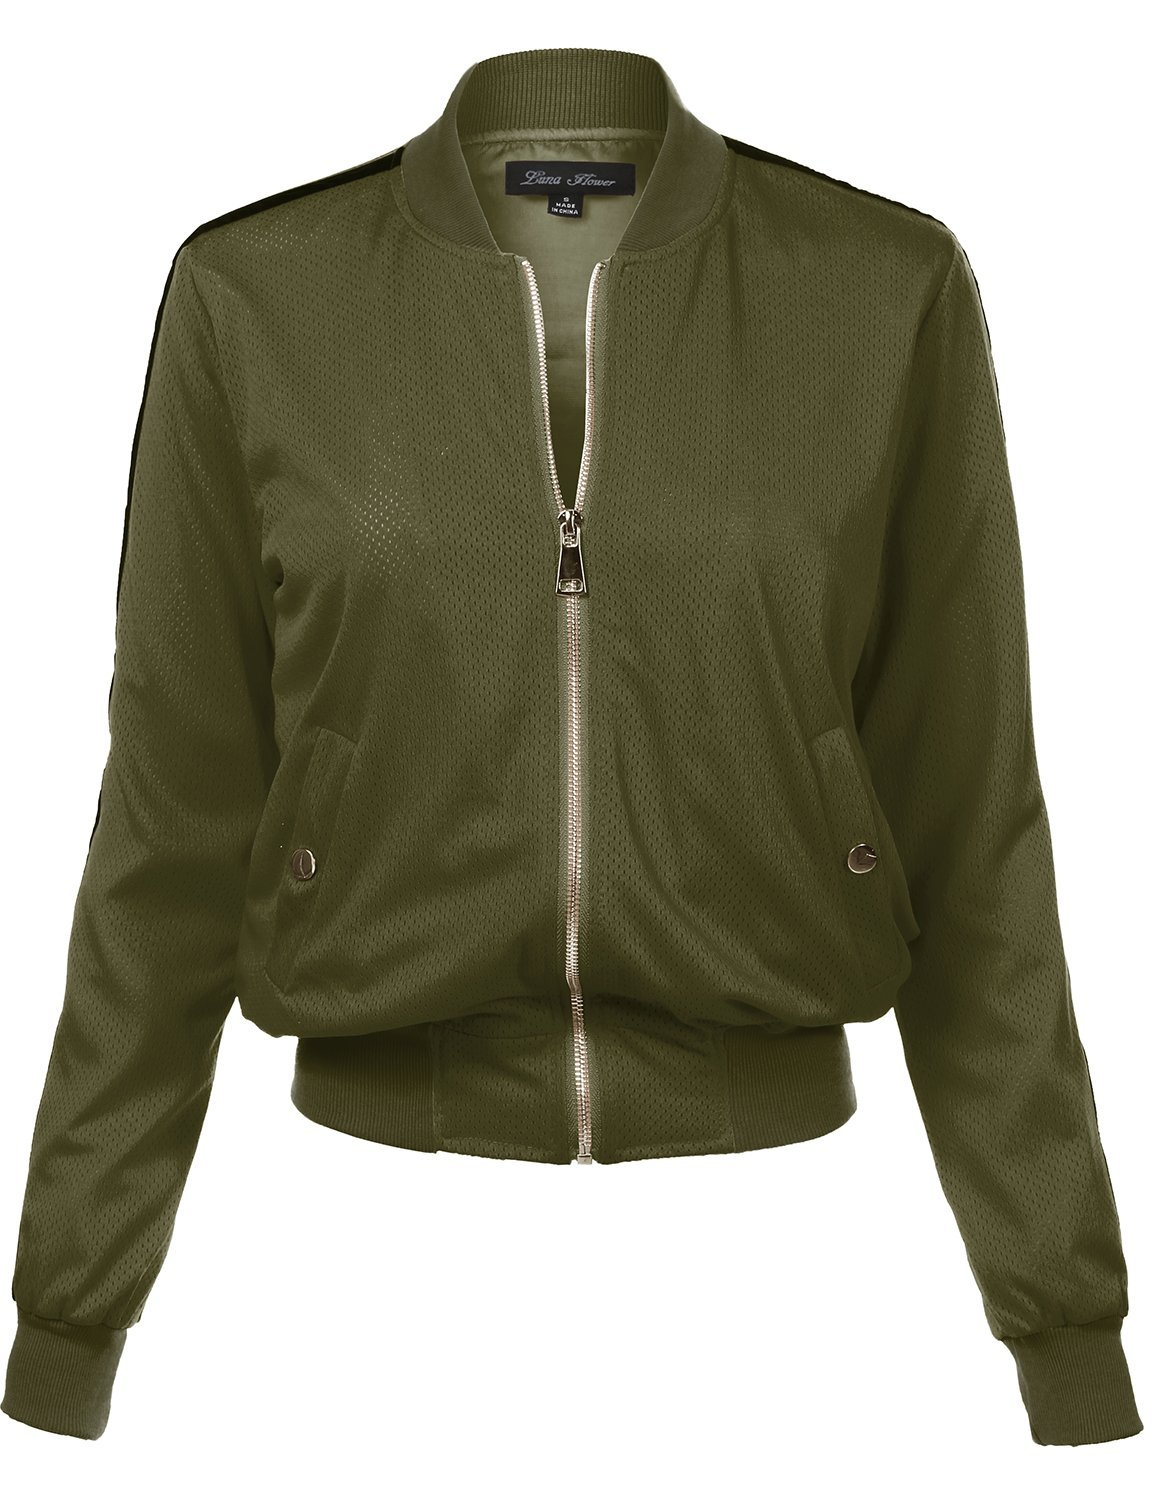 Waist Length Relaxed Fitted Style Zipper Closure Bomber Jacket, 109-Olive, Medium